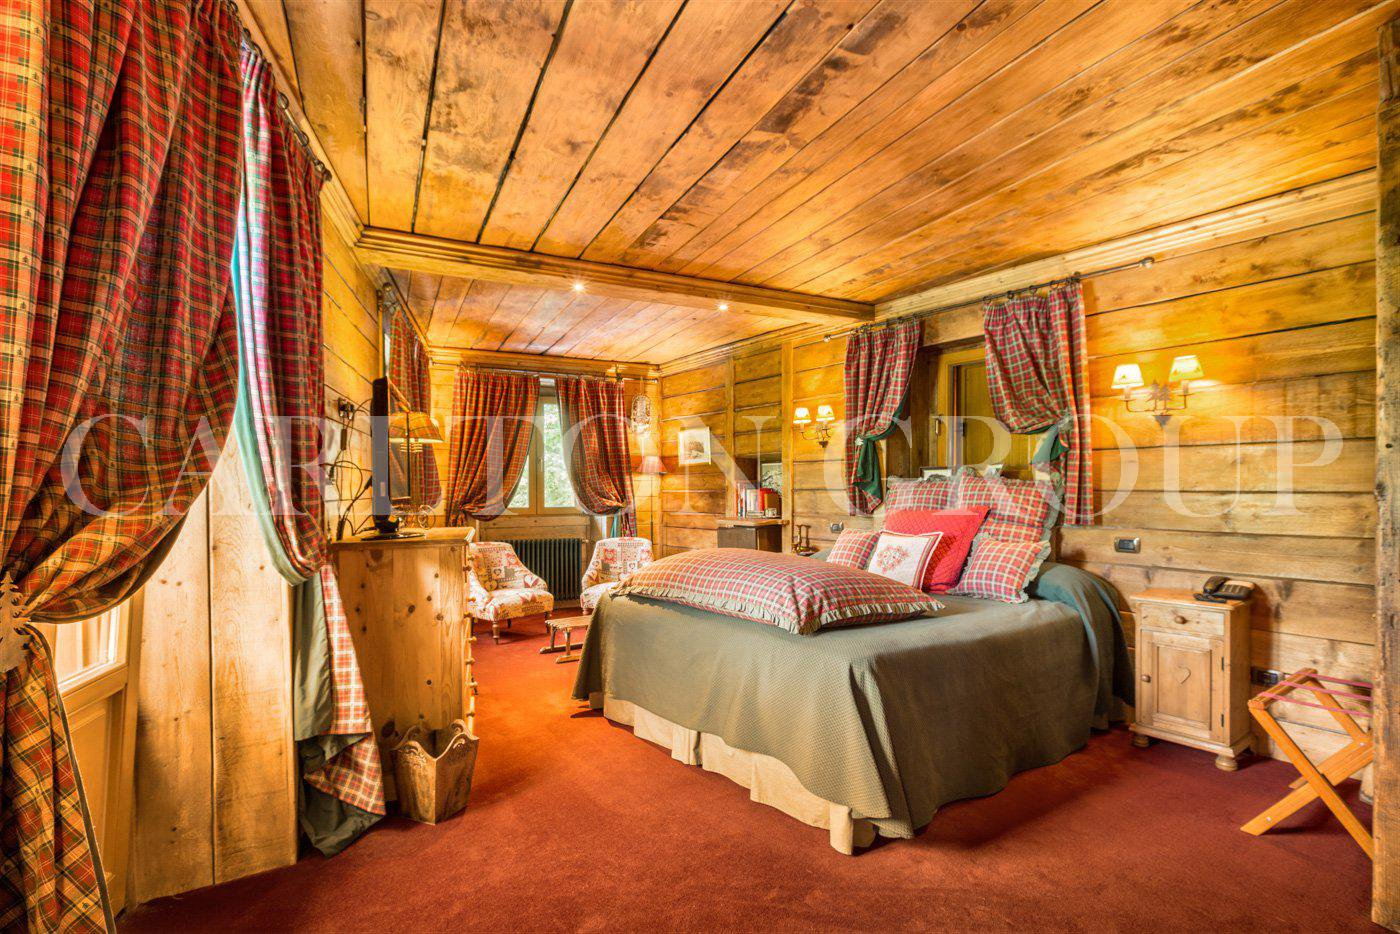 3* BOUTIQUE-HOTEL IN SOUTHERN ITALIAN ALPES